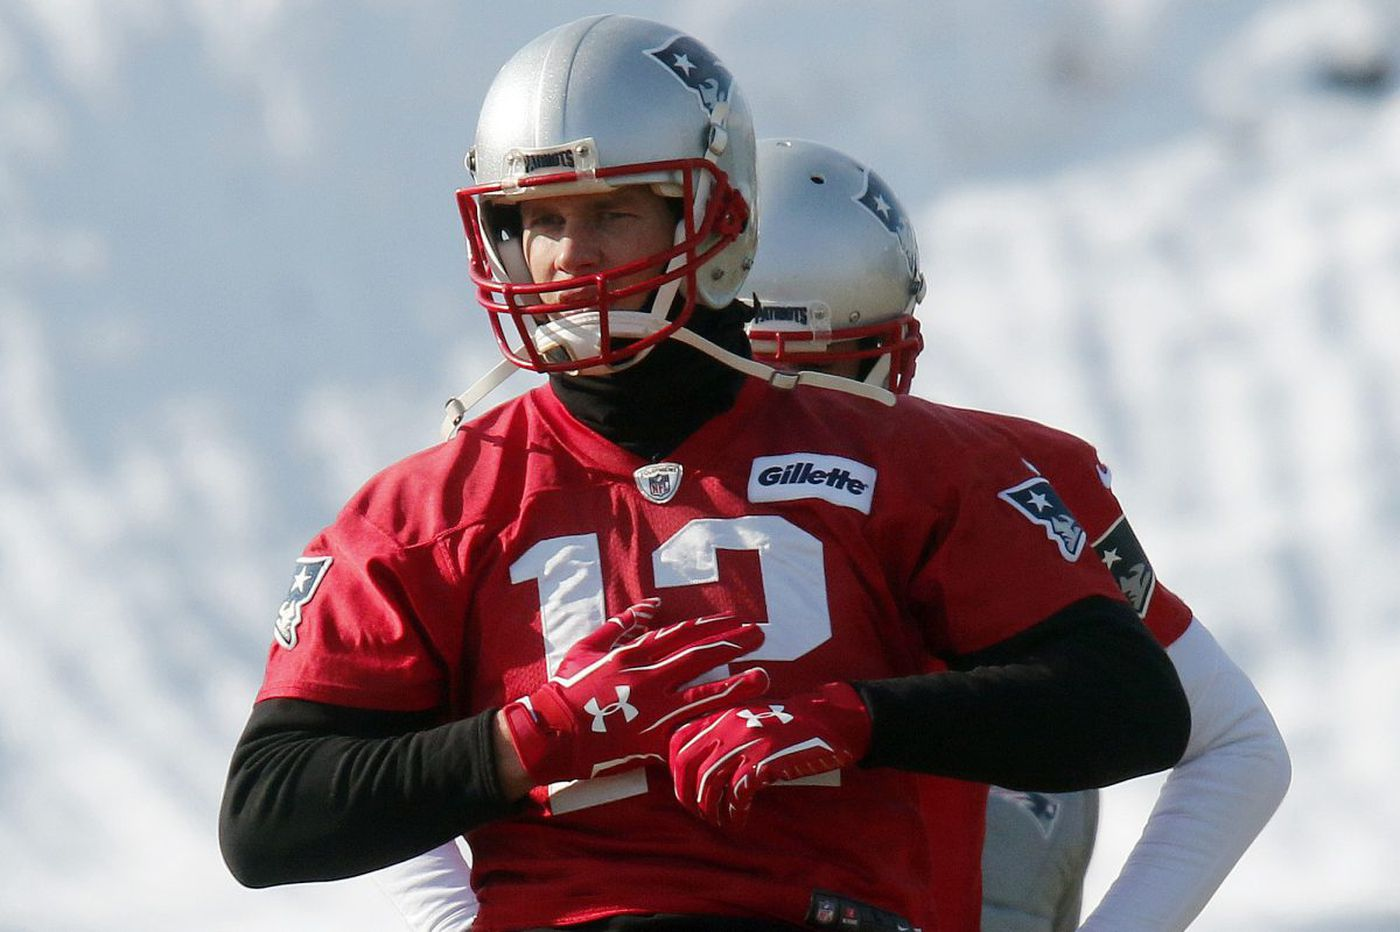 Despite superstar status, Tom Brady just one of the guys